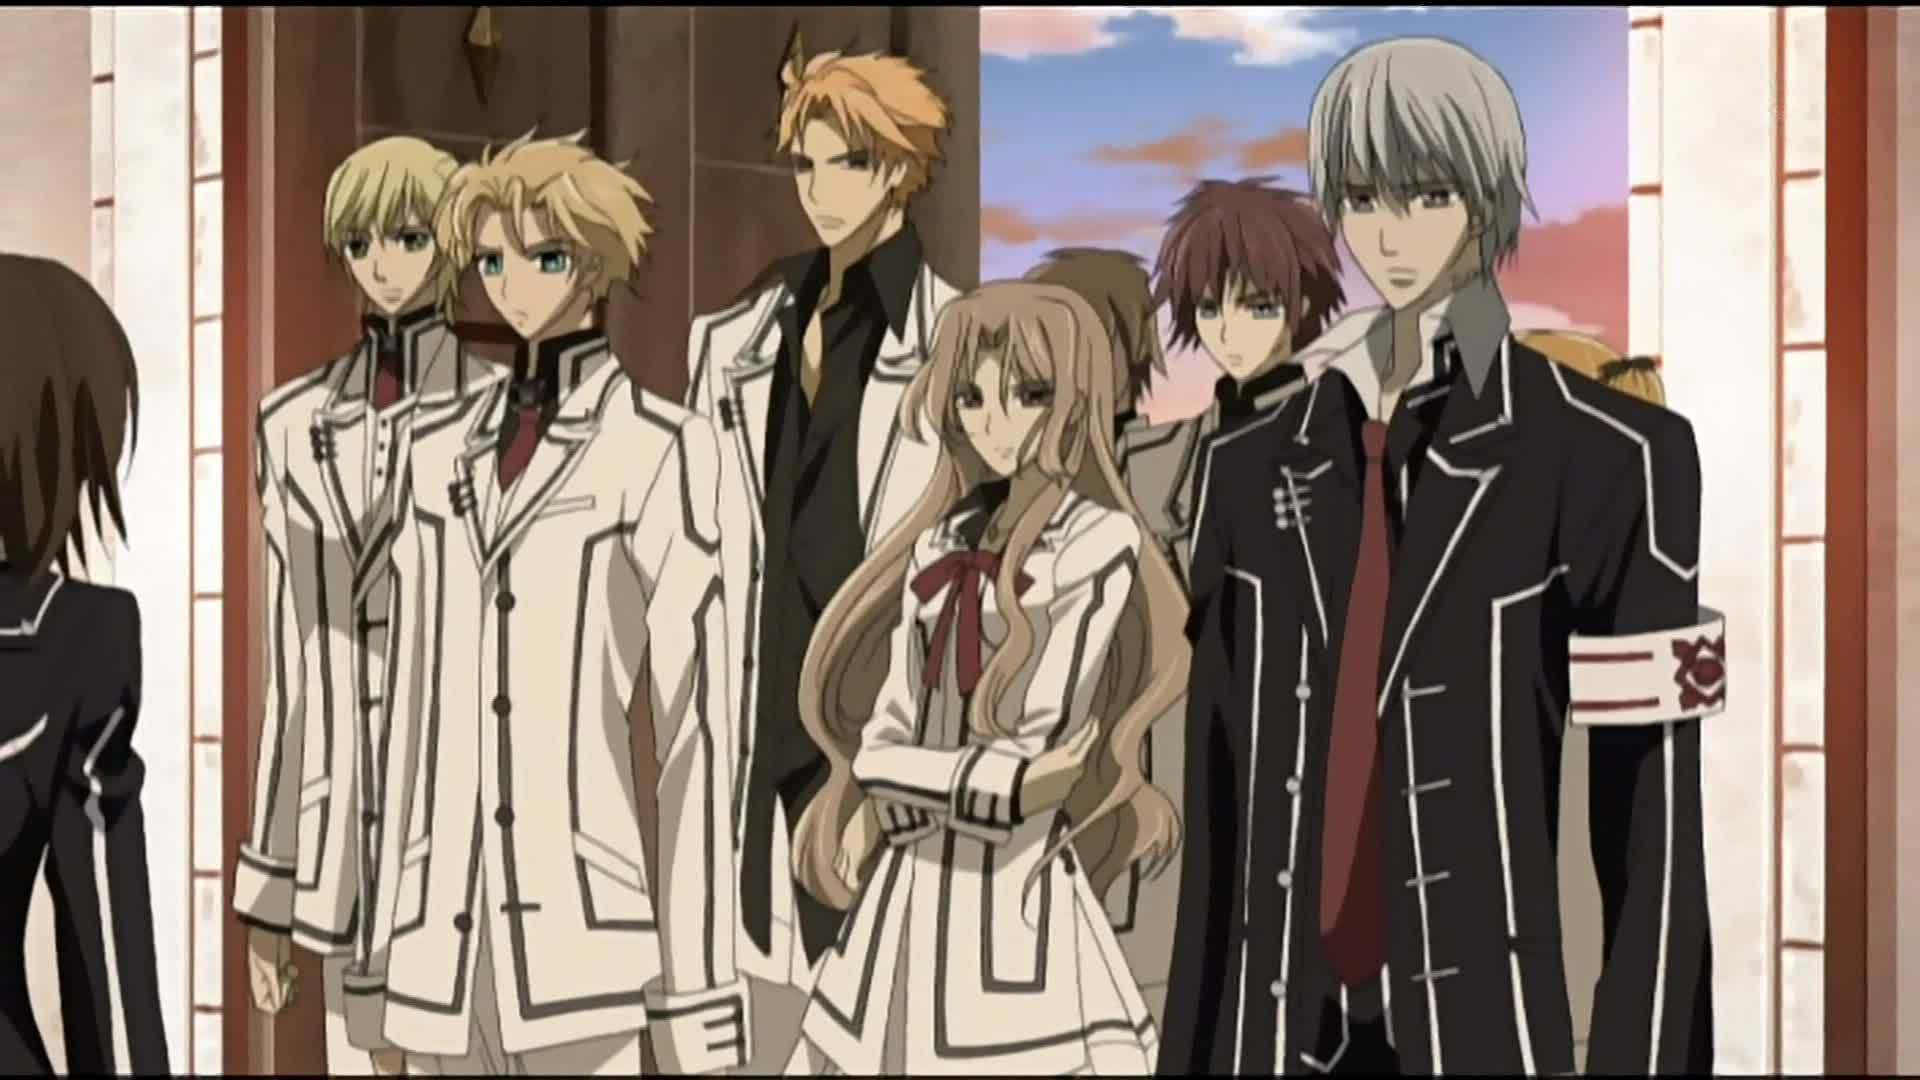 Zero-Kiryuu-In-Vampire-Knight-Guilty-Episode-1-Sinners-Of-Fate-anime-guys-20573488-1920-1080